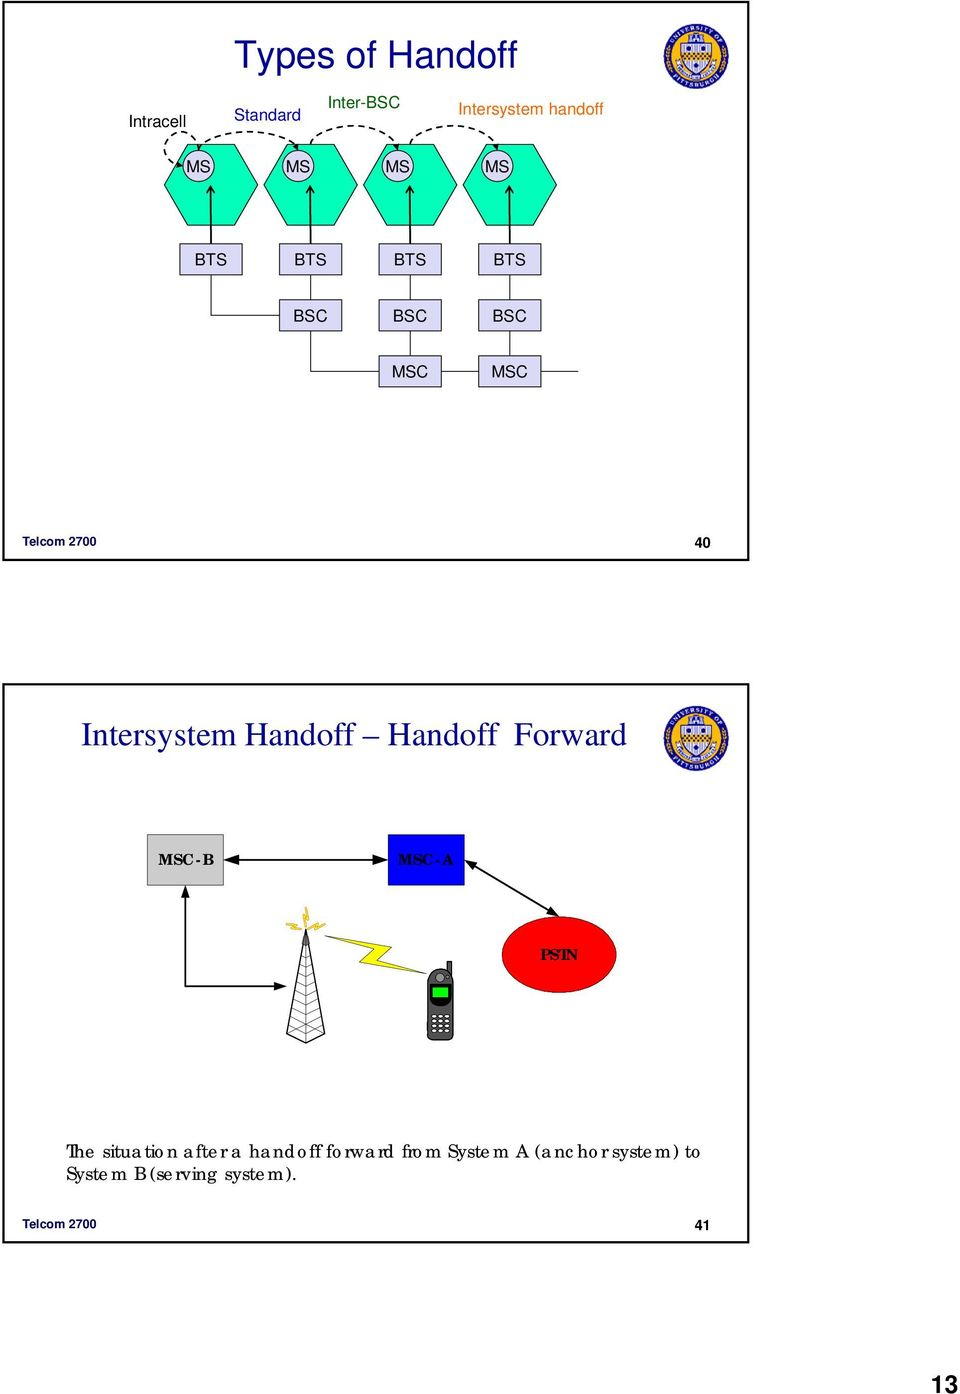 -B -A PSTN The situation after a handoff forward from System A